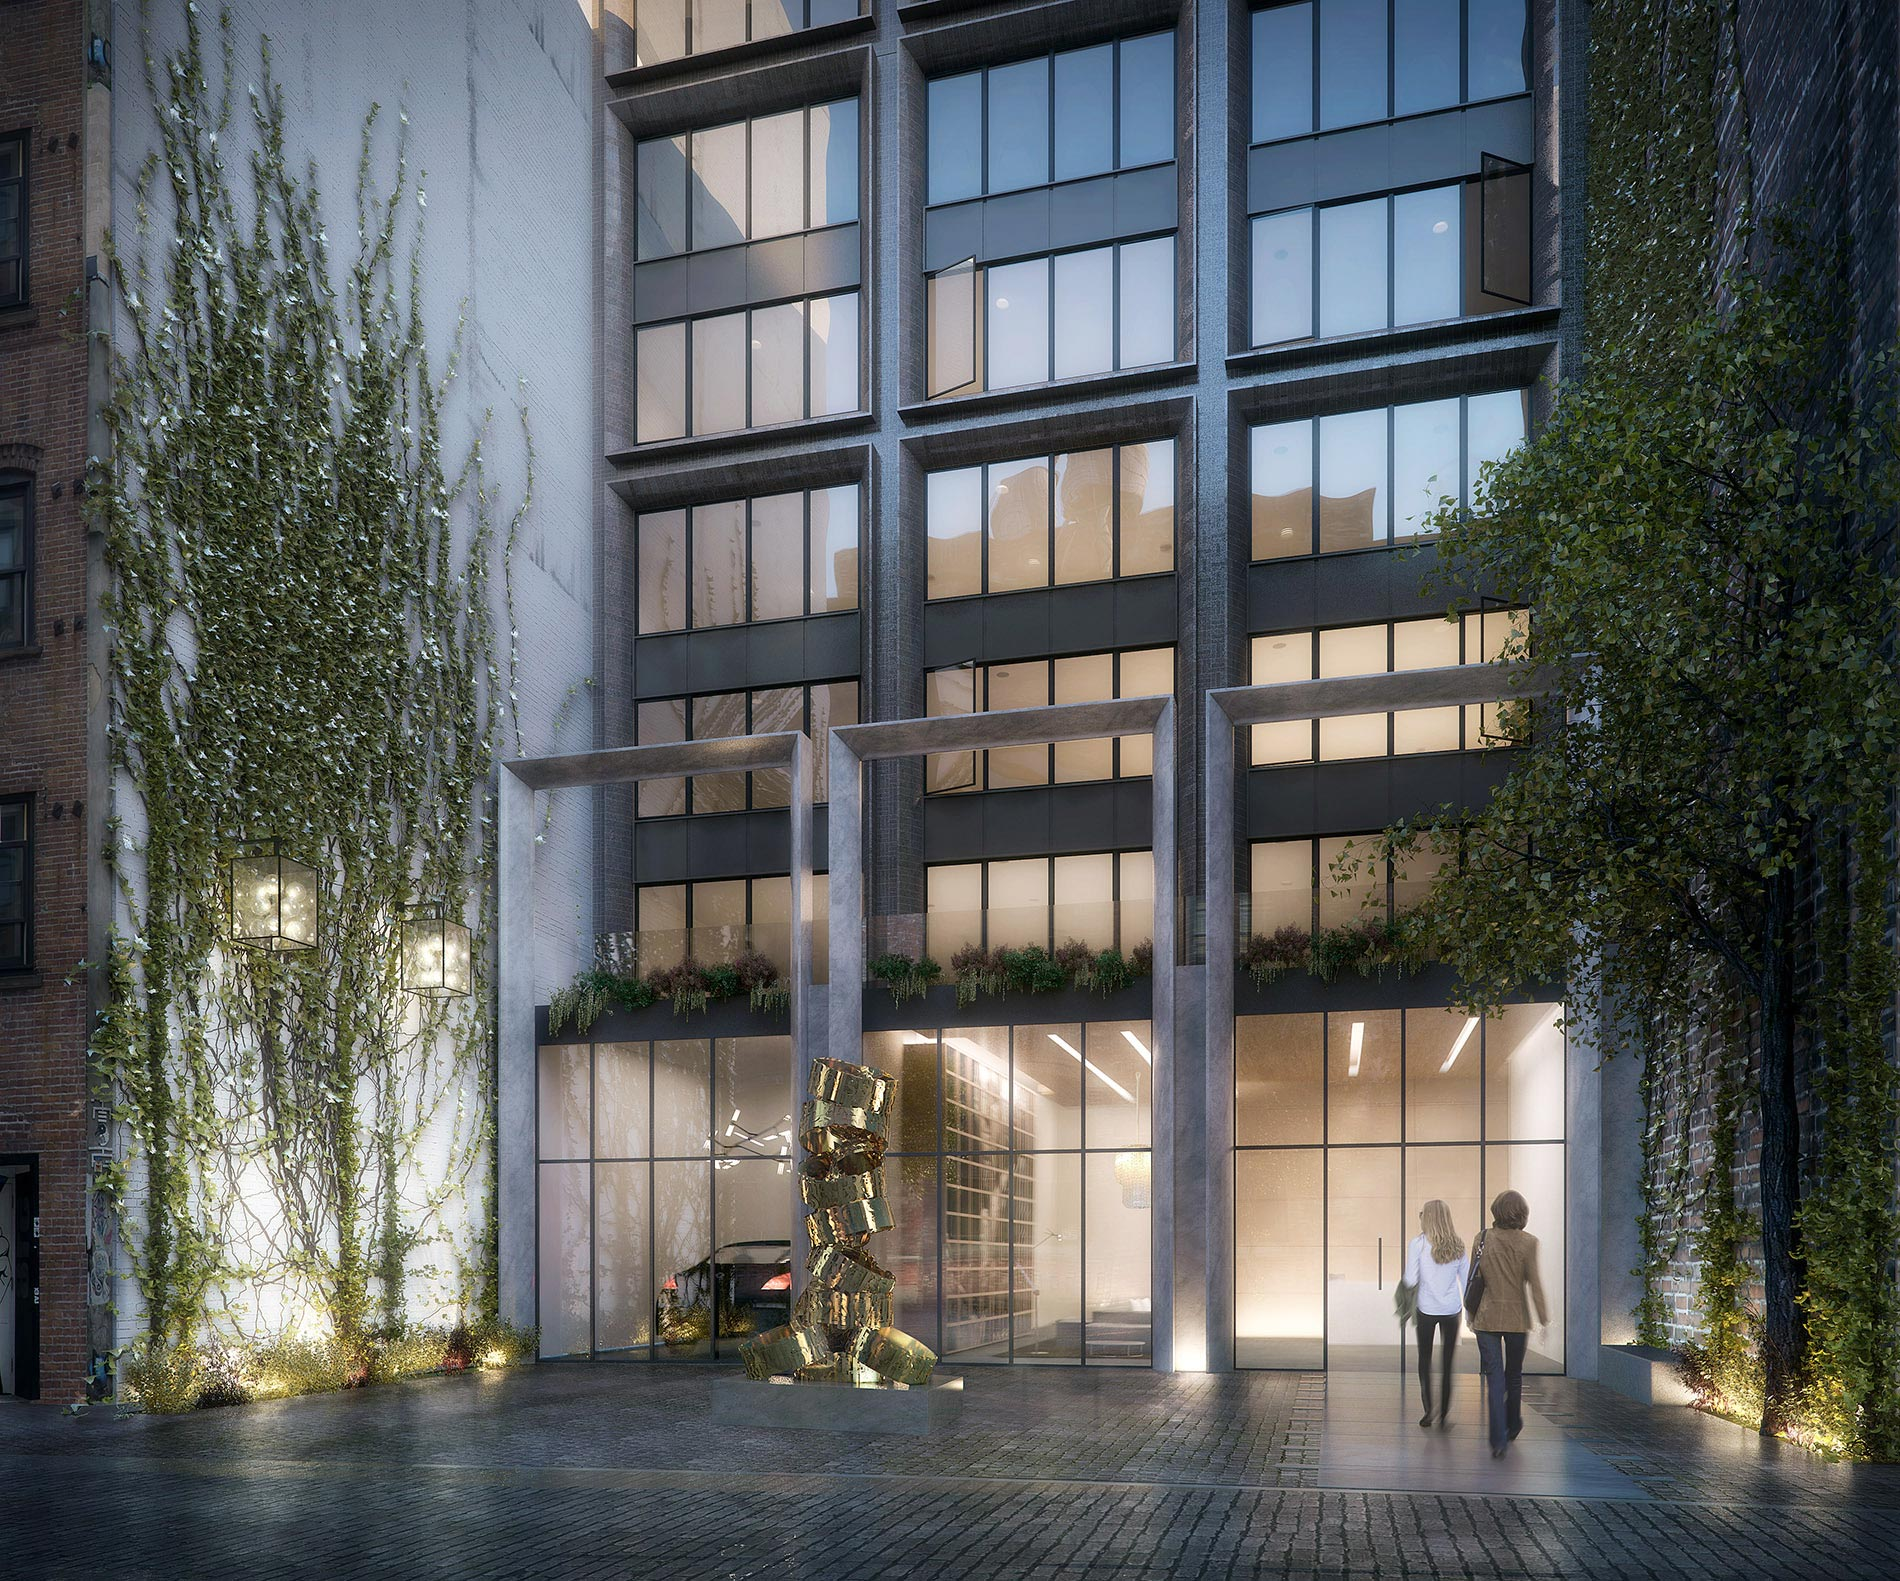 Architectural Rendering of the entrance of the 5 Franklin Place project located in Tribeca, New York City